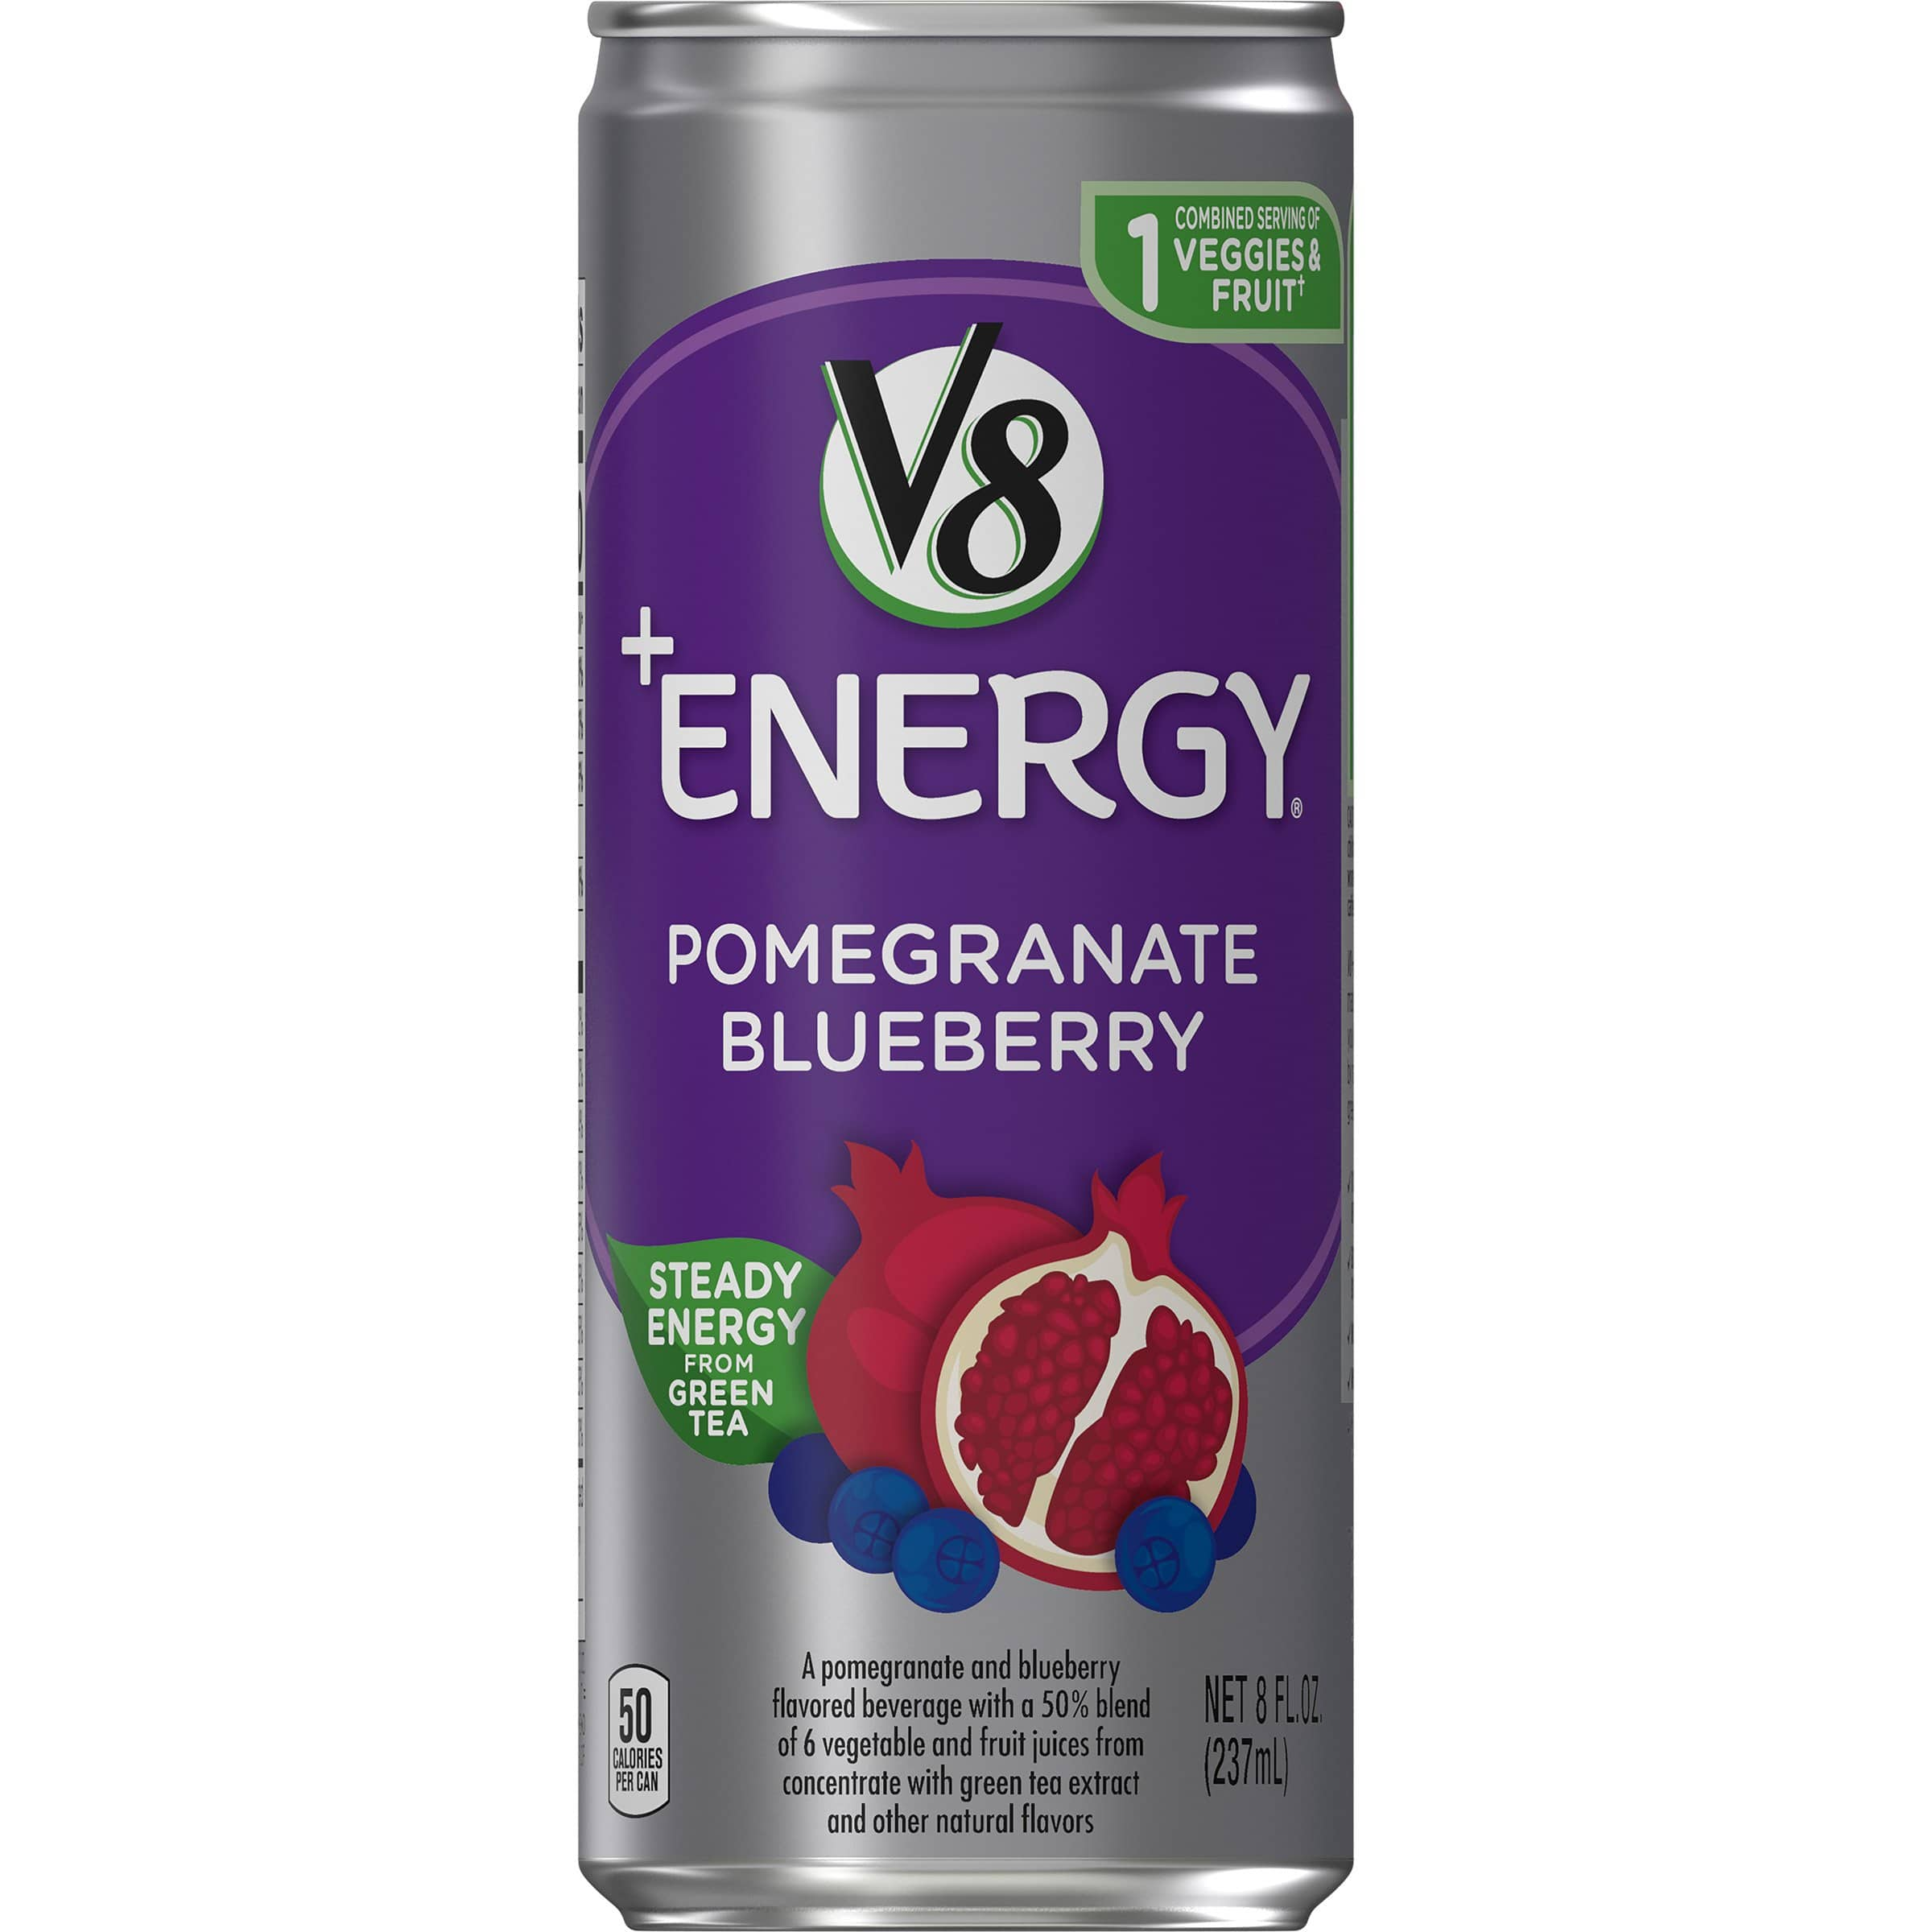 Prime Members: Try One 8oz V8 +Energy Drink for free, Orange Pineapple or Pomegranate Blueberry $2 Receive $2 Amazon Credit